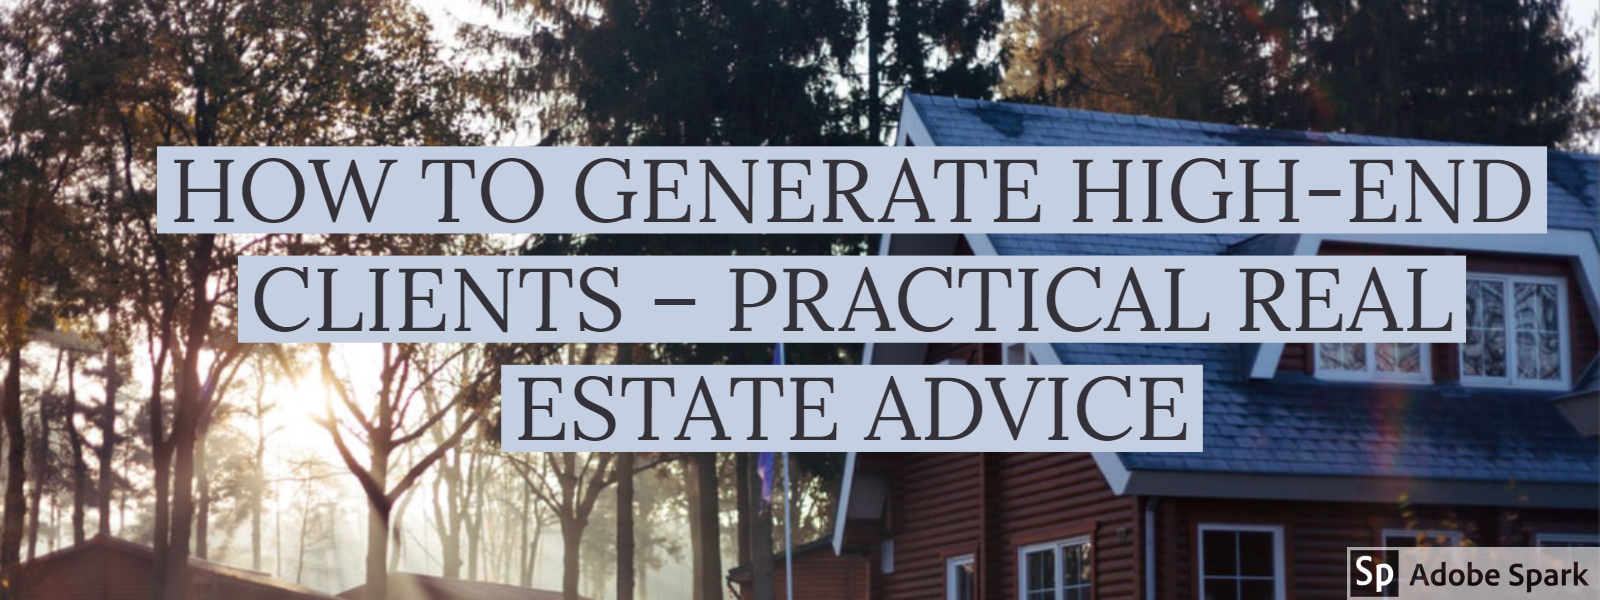 HOW TO GENERATE HIGH-END CLIENTS – PRACTICAL REAL ESTATE ADVICE